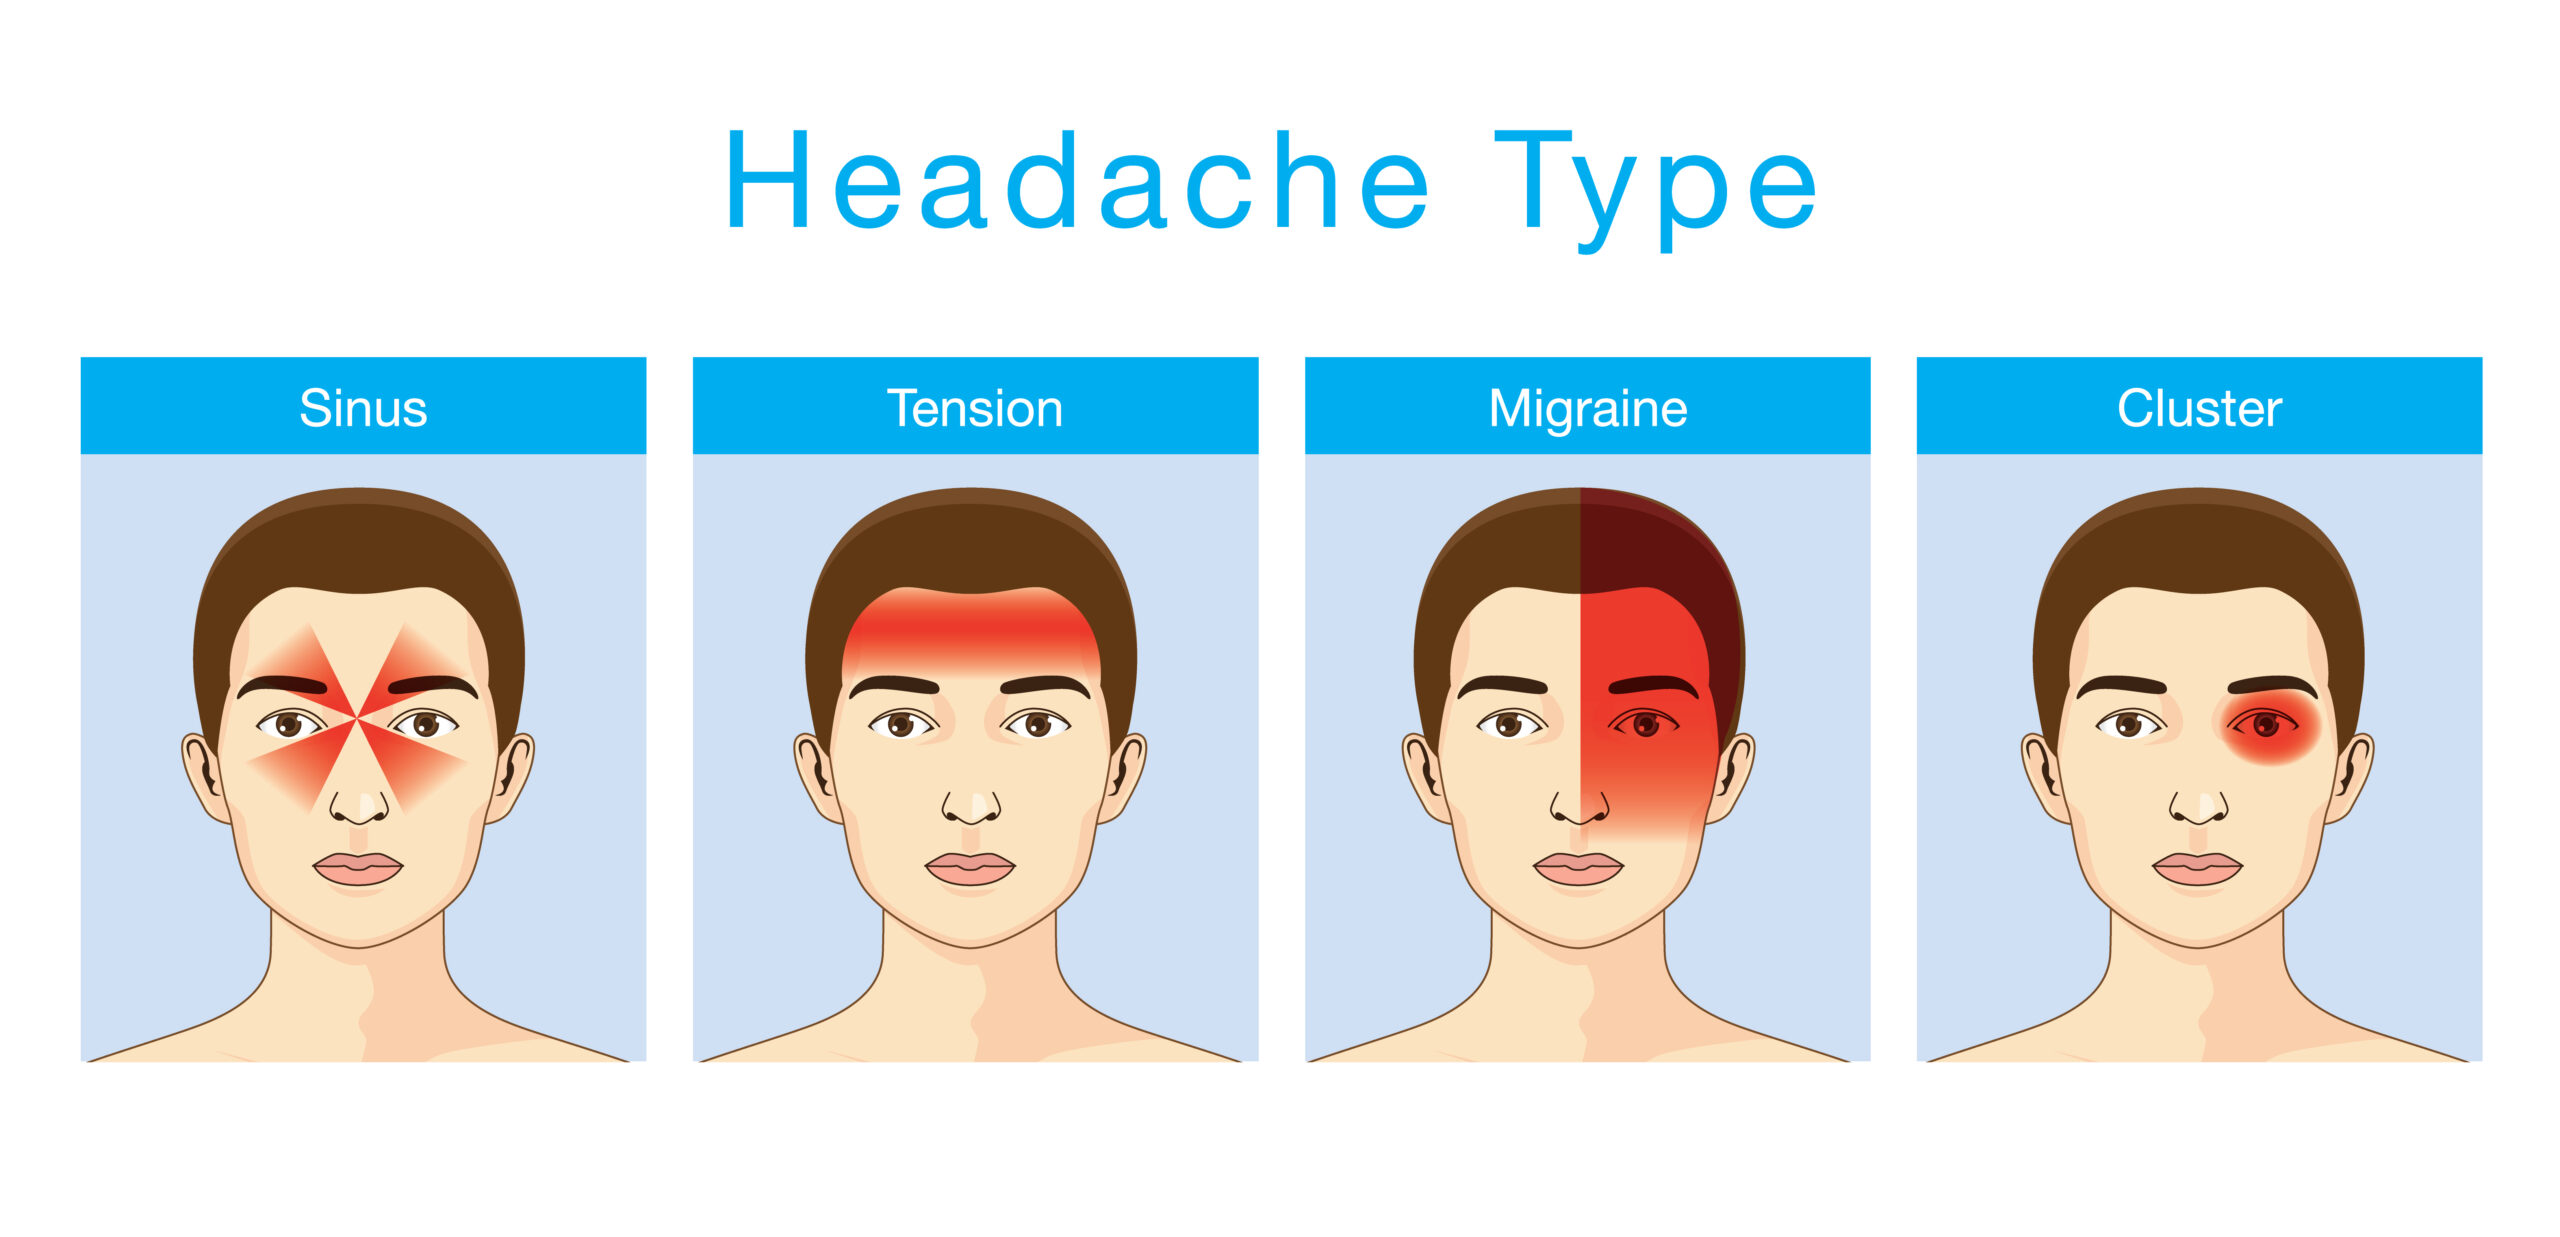 4 Main Types of Headaches